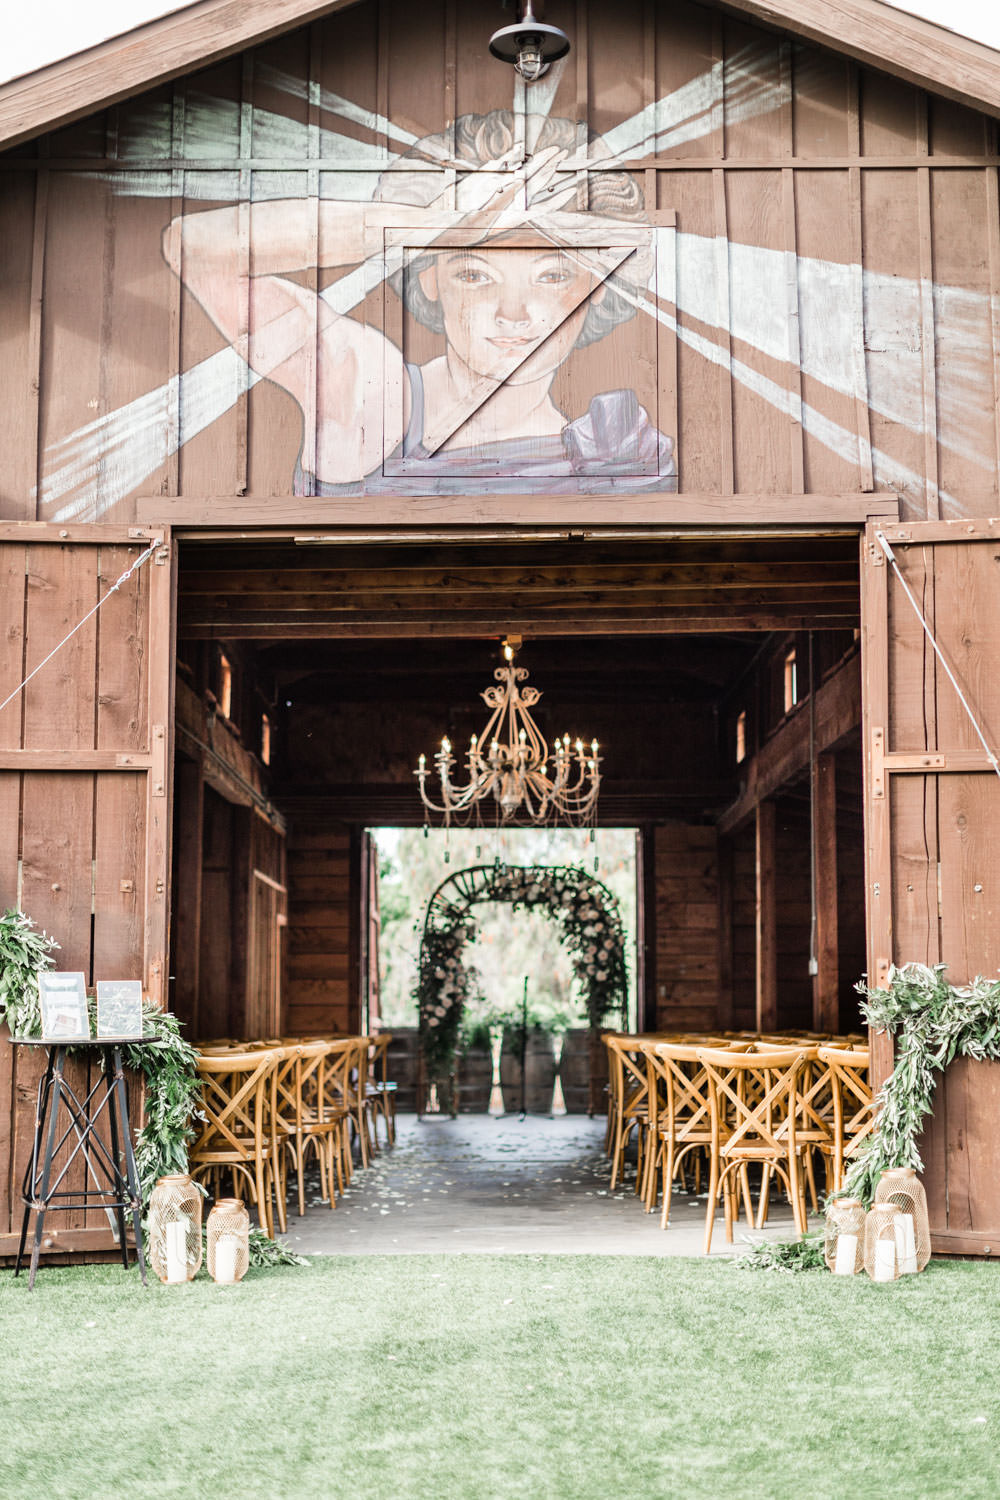 Ethereal Open Air Resort Wedding Ceremony in a barn with white green and blush flowers, Cavin Elizabeth Photography